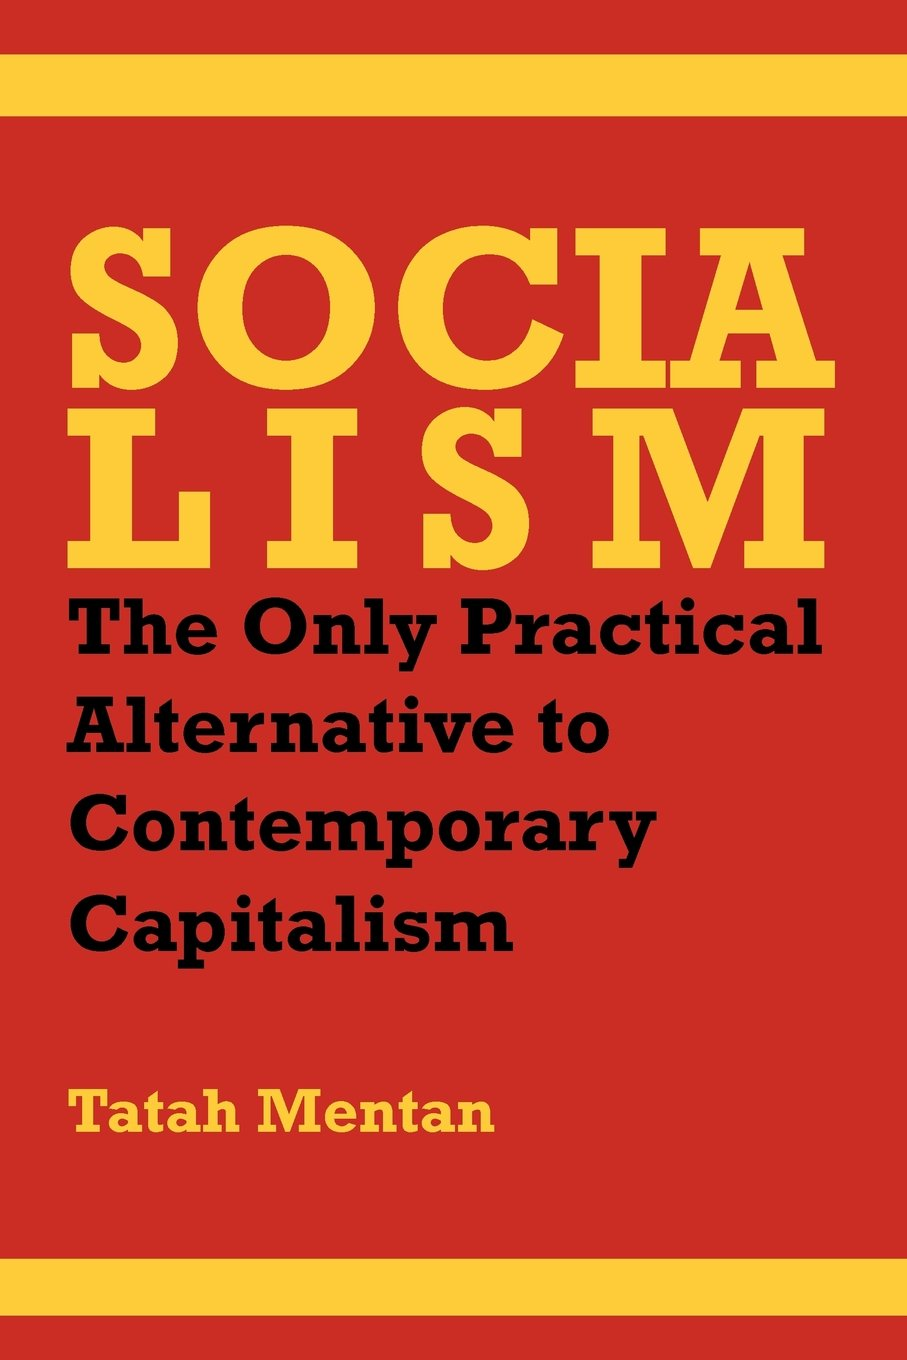 Socialism: The Only Practical Alternative to Contemporary Capitalism pdf